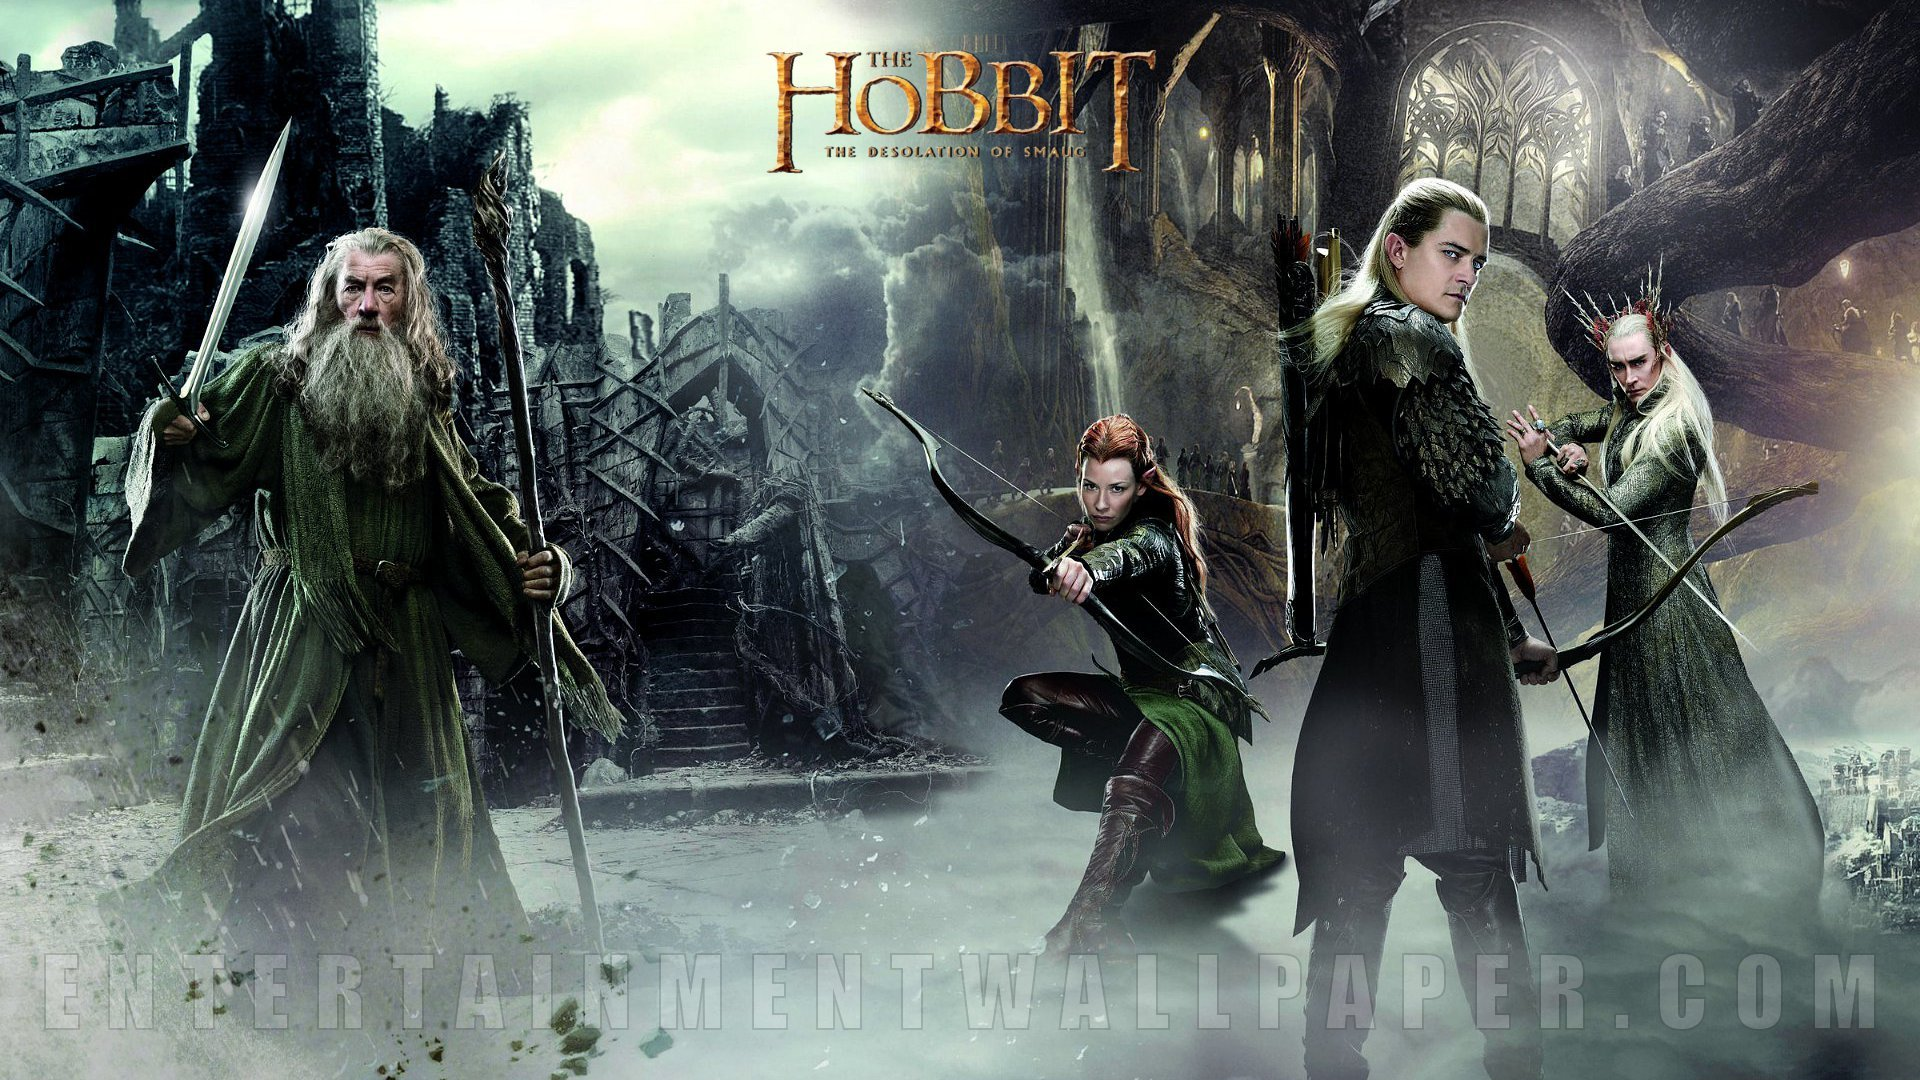 The Hobbit The Desolation of Smaug Wallpaper   10042875 1920x1080 1920x1080